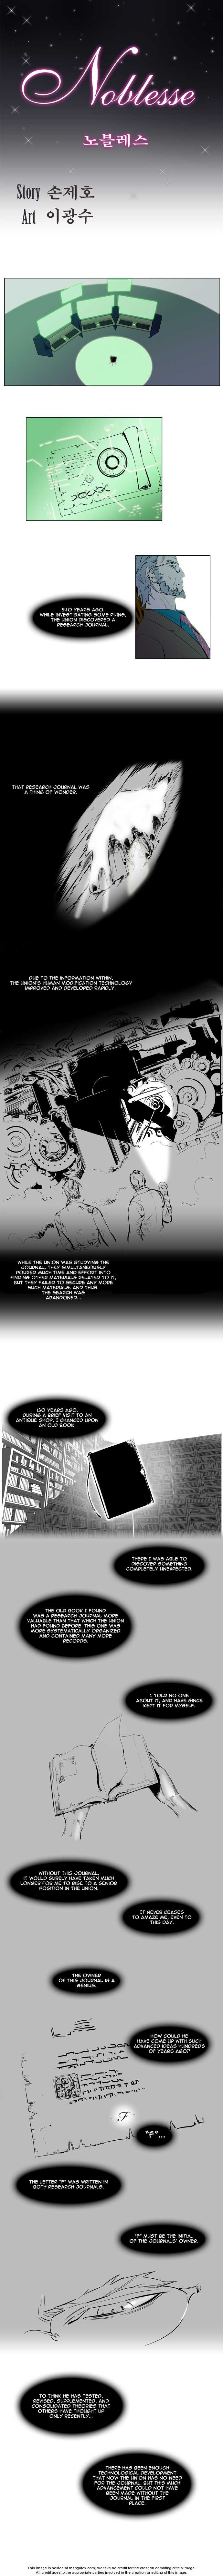 Noblesse 140 Page 1